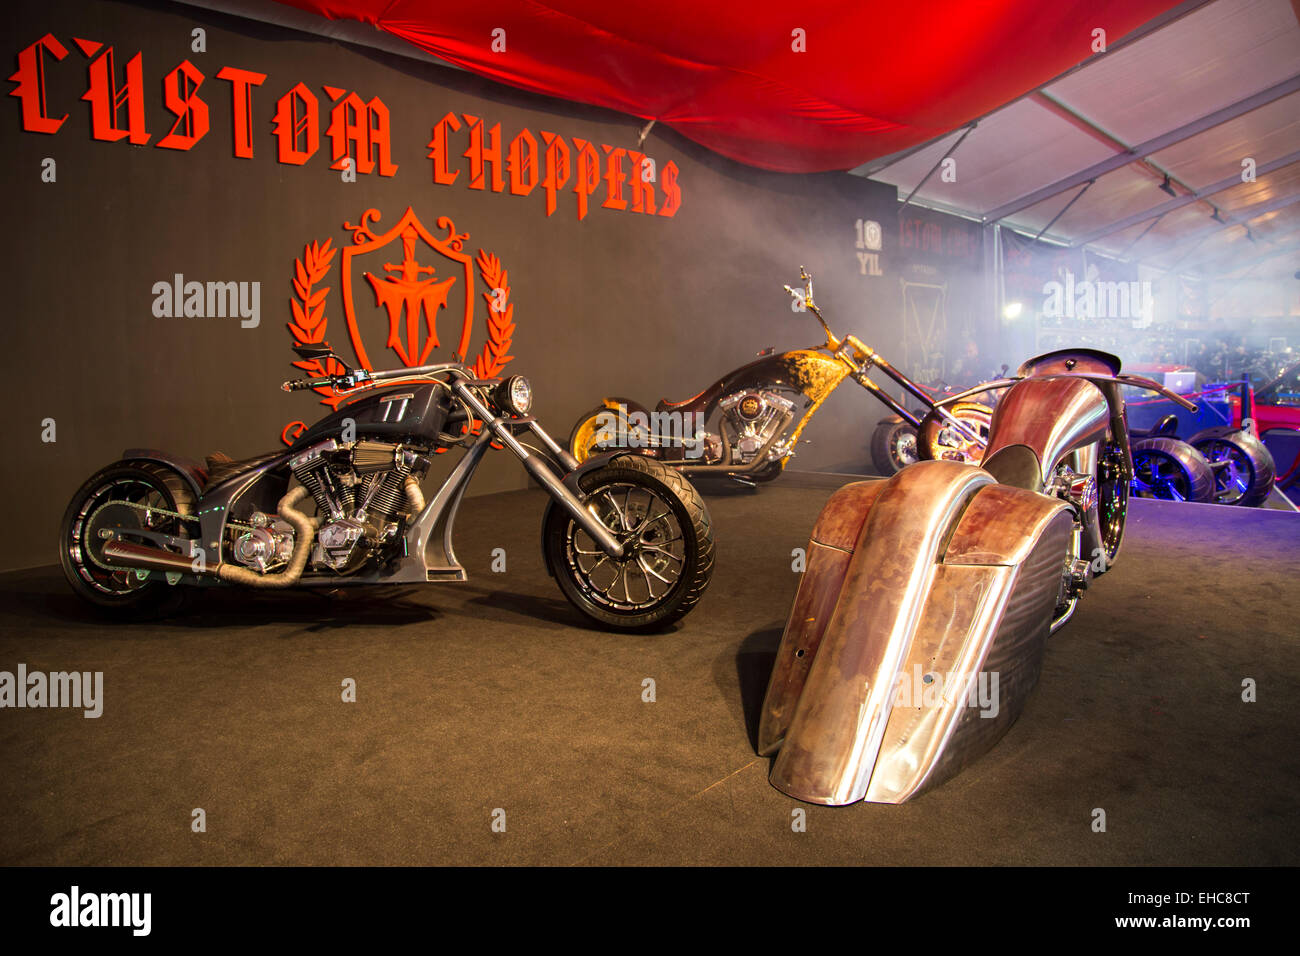 Istanbul, Turkey - February 27, 2015: TT Custom Choppers motorcycles on display at Eurasia motobike expo, CNR Expo - Stock Image